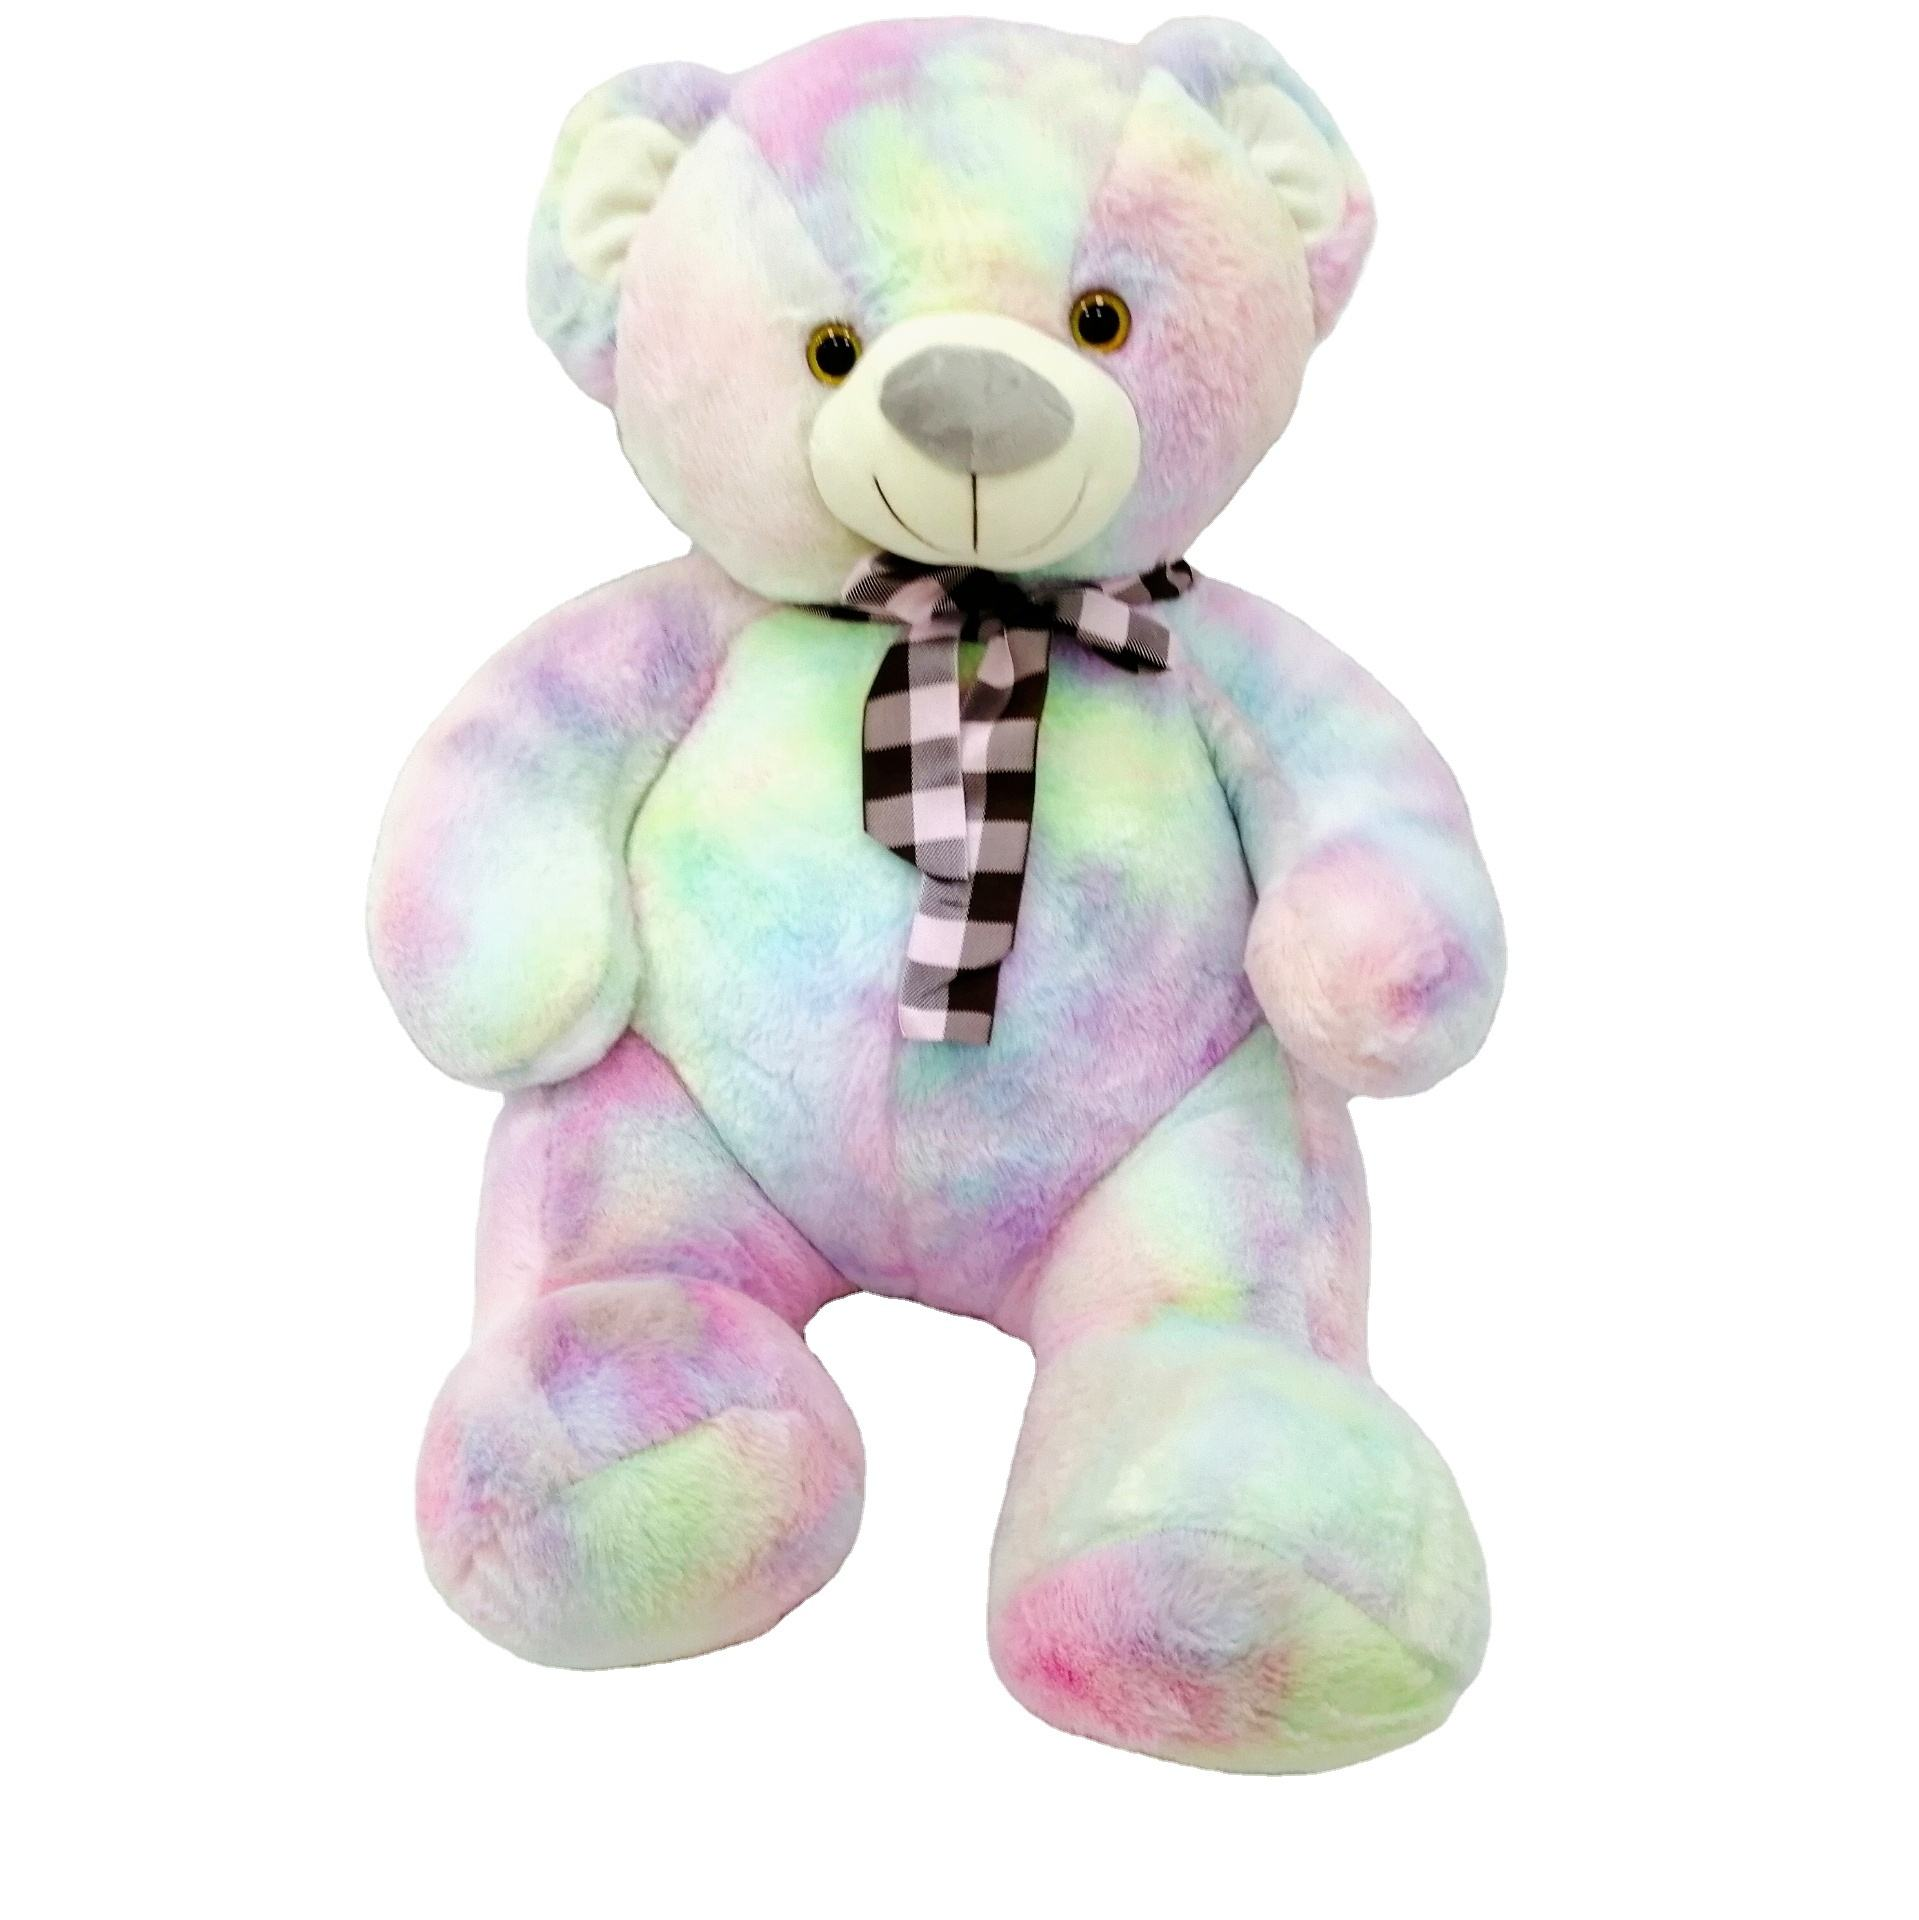 2021 Valentines Gift New fashion hot selling souvenir gift colorful teddy bear plush toy